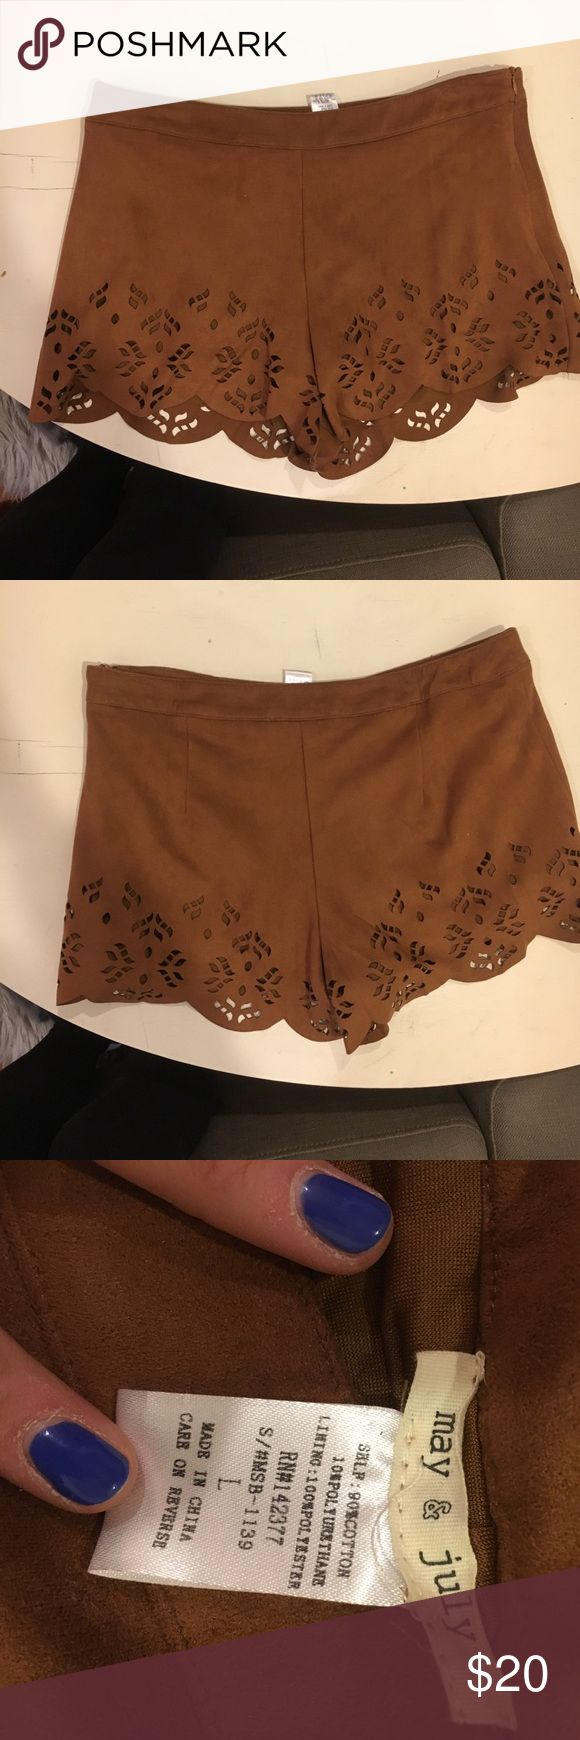 Brown suede cut out shorts size large Brown suede shorts with cut out scalloped hem. Size large Shorts